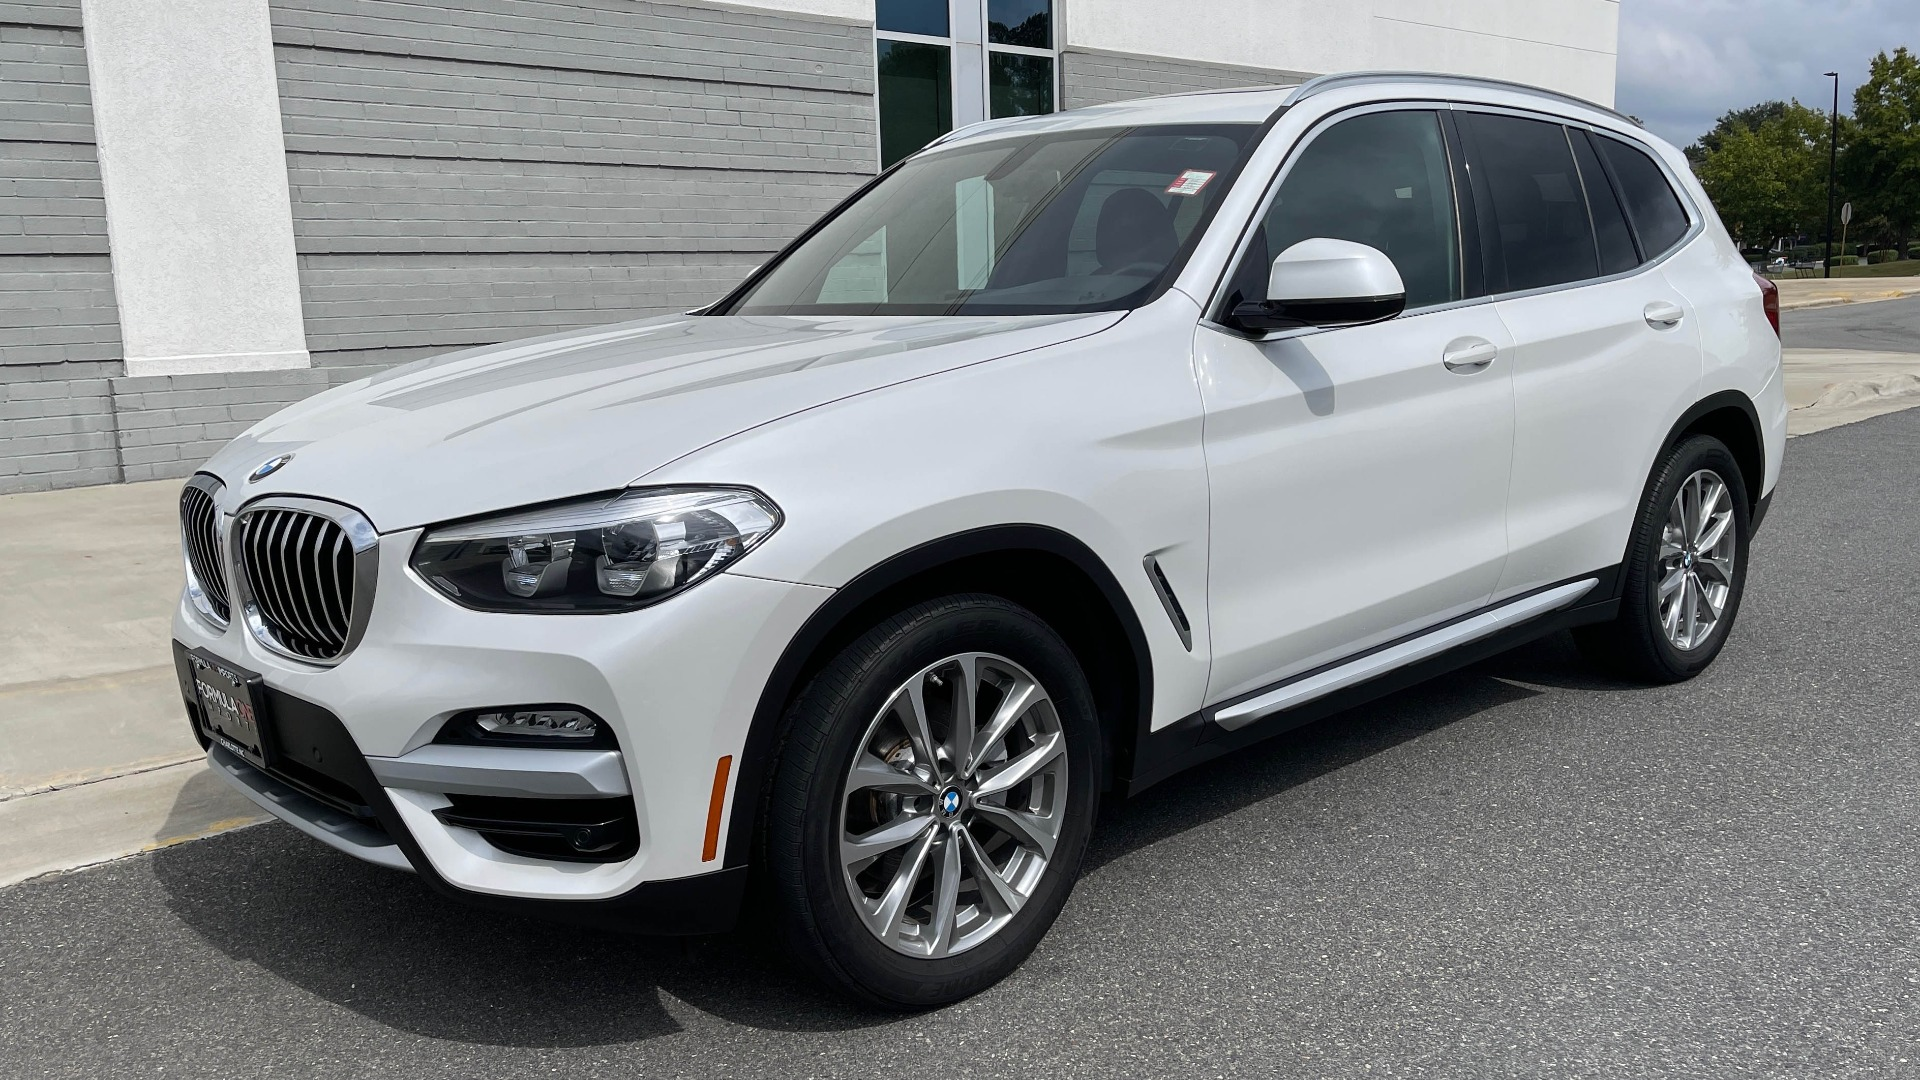 Used 2018 BMW X3 XDRIVE30I / NAV / PANO-ROOF / HTD STS / PARK DIST CNTRL / REARVIEW for sale $38,995 at Formula Imports in Charlotte NC 28227 2